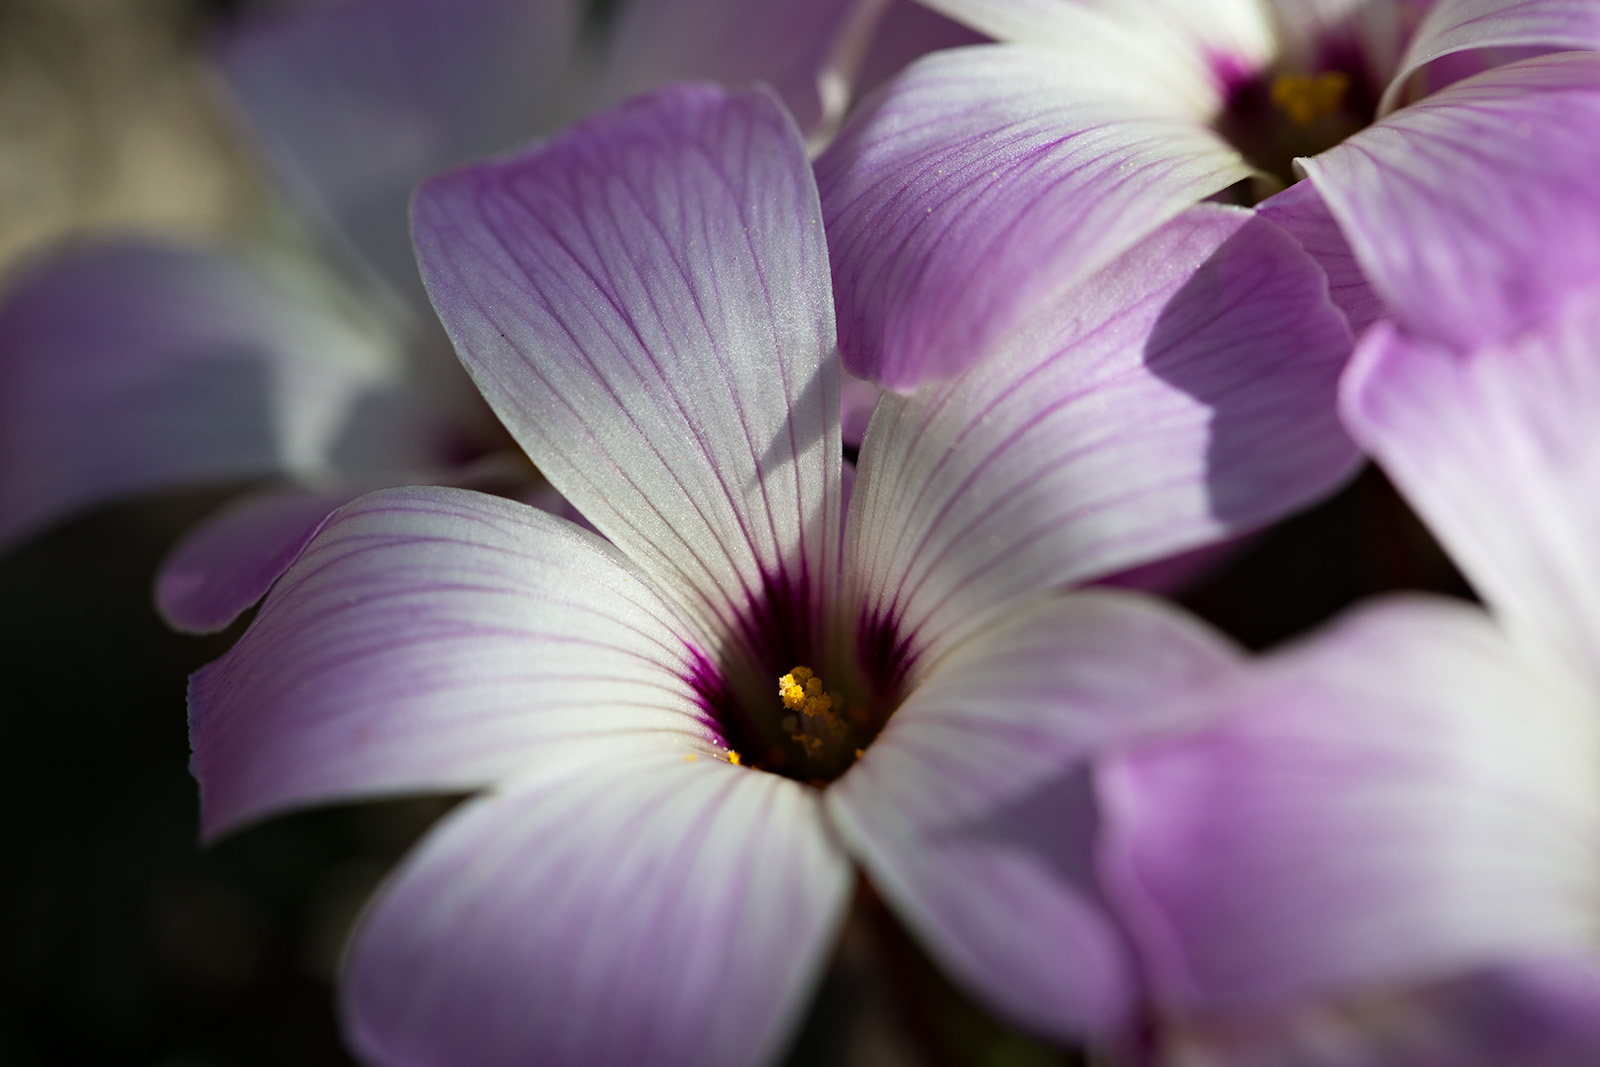 Another close-up of Oxalis adenophylla